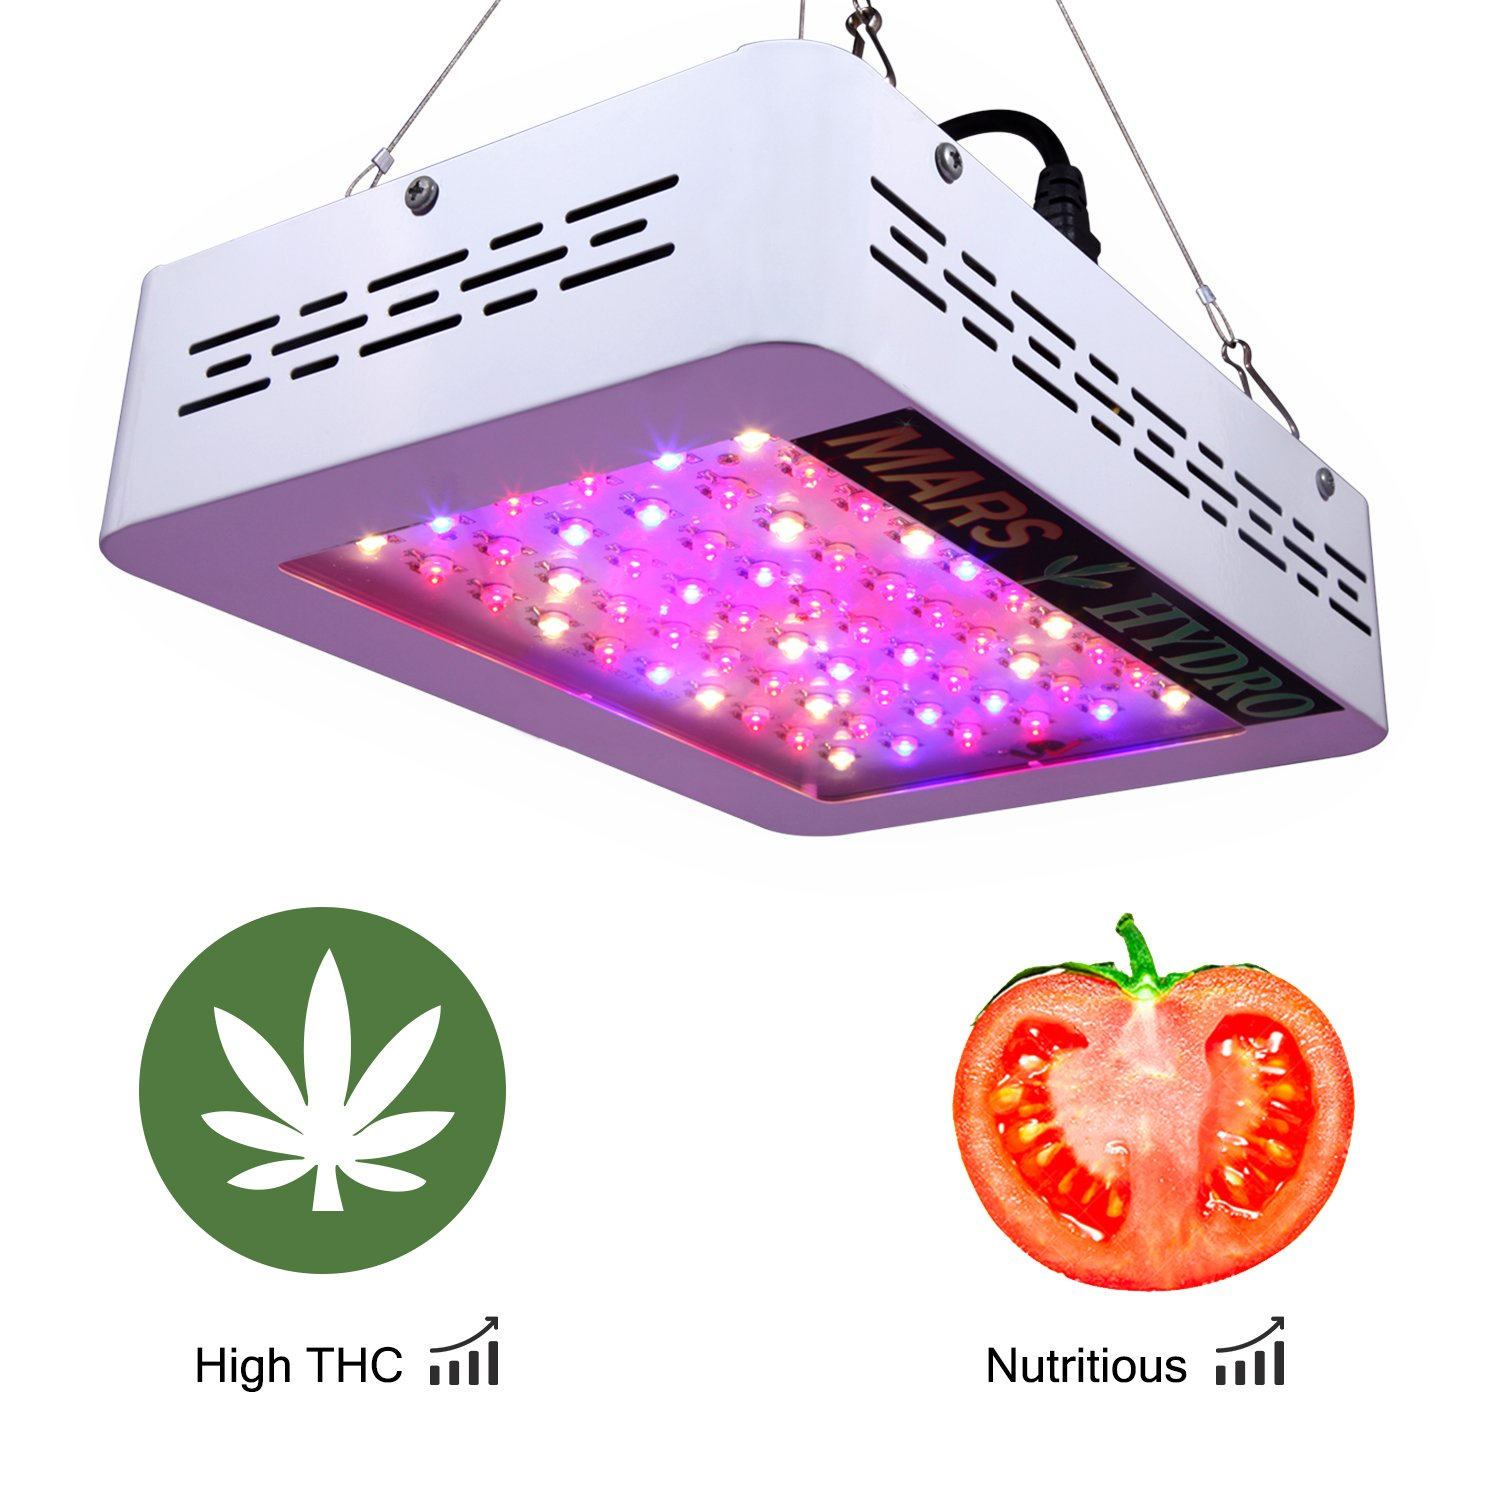 MarsHydro 300W LED Grow Light Full Spectrum for Hydroponic Indoor Plants Growing Veg and Flower by MARS HYDRO (Image #3)